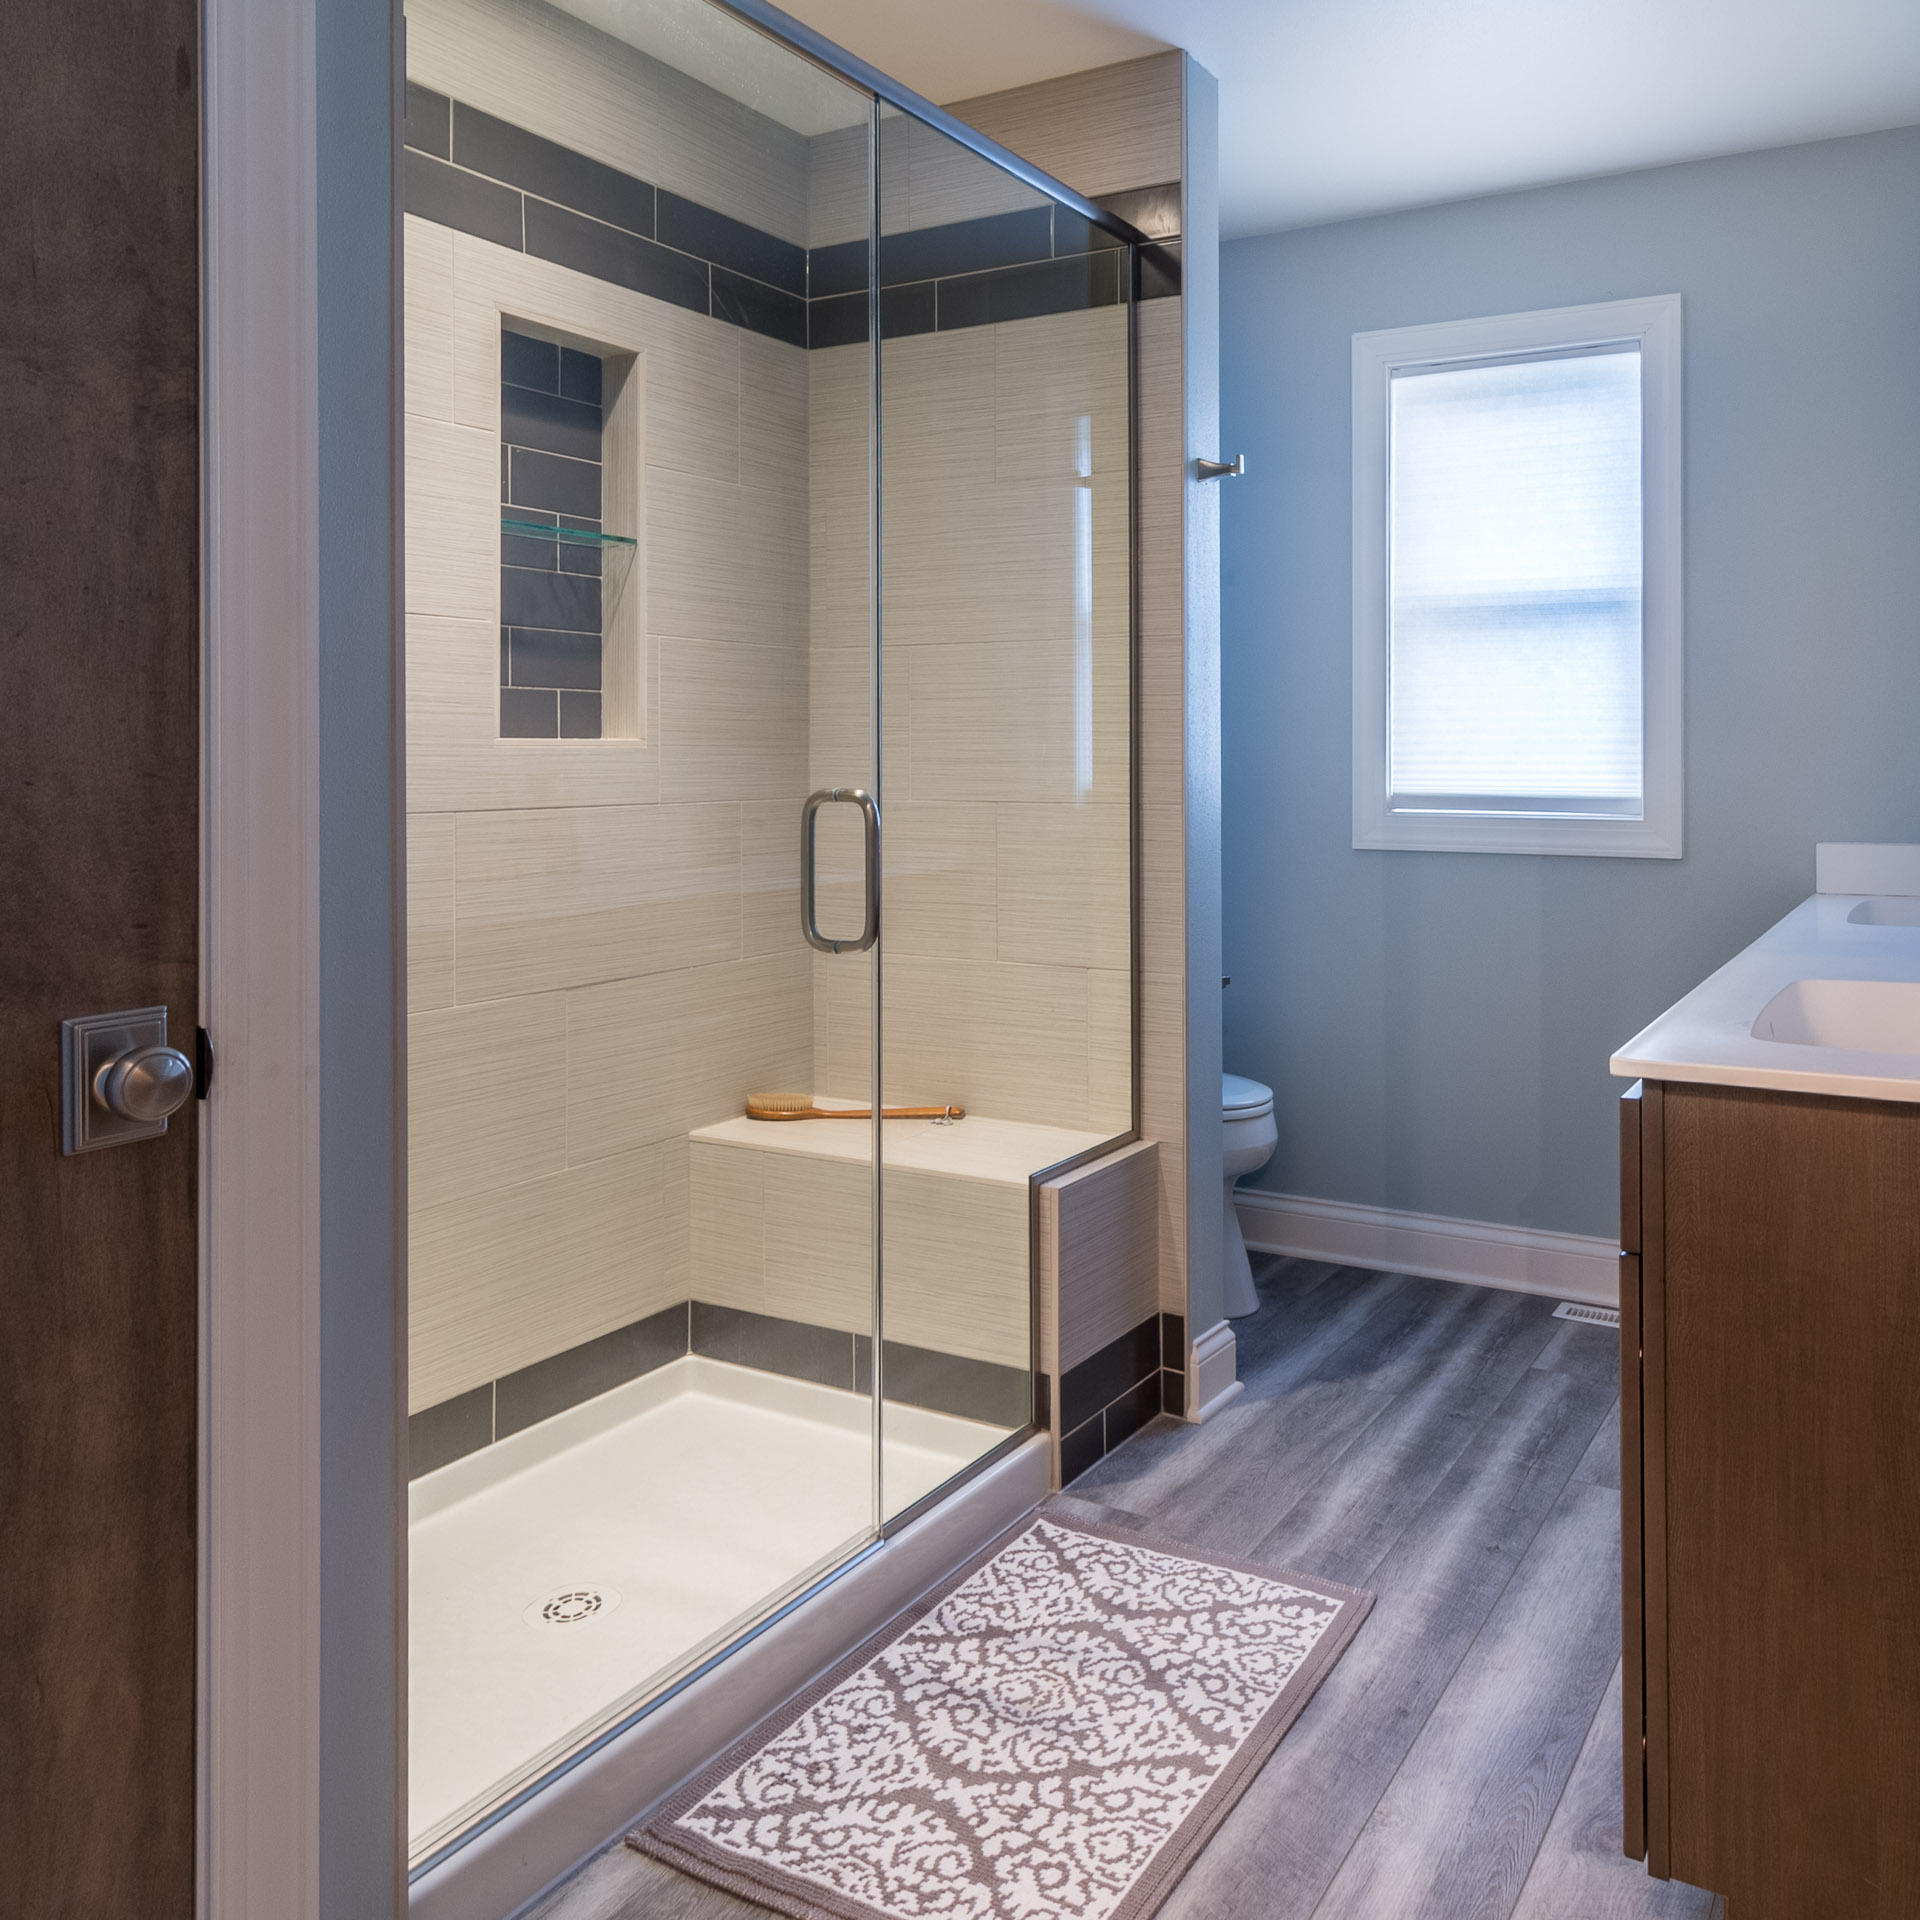 - How do you want your bathroom to feel? Tile design, flooring, paint, and fixtures all influence the design and feel of your bathroom.